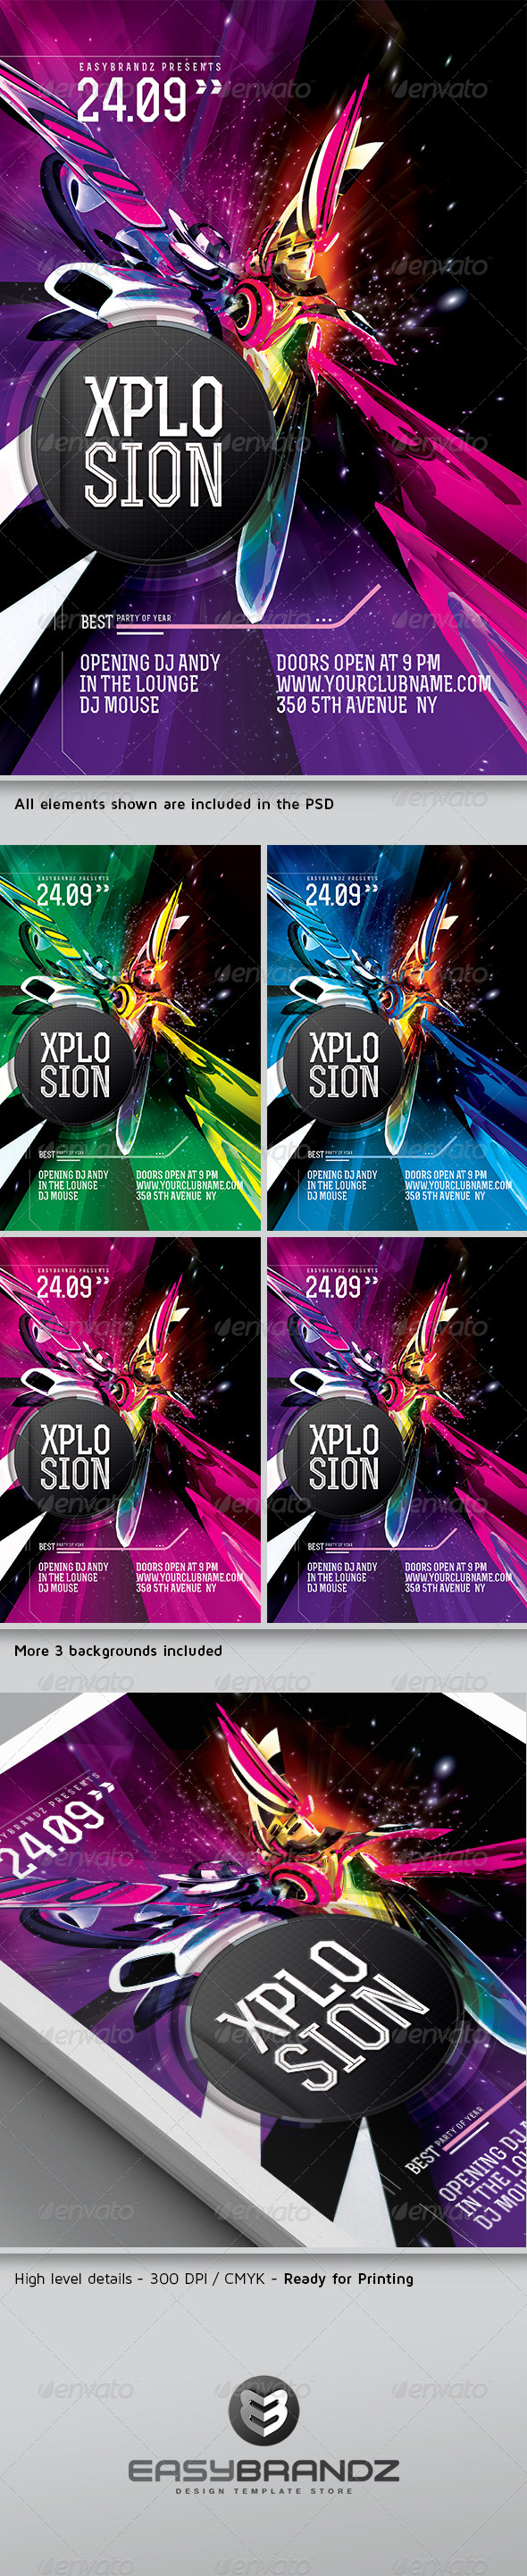 Xplosion Flyer Template - Events Flyers